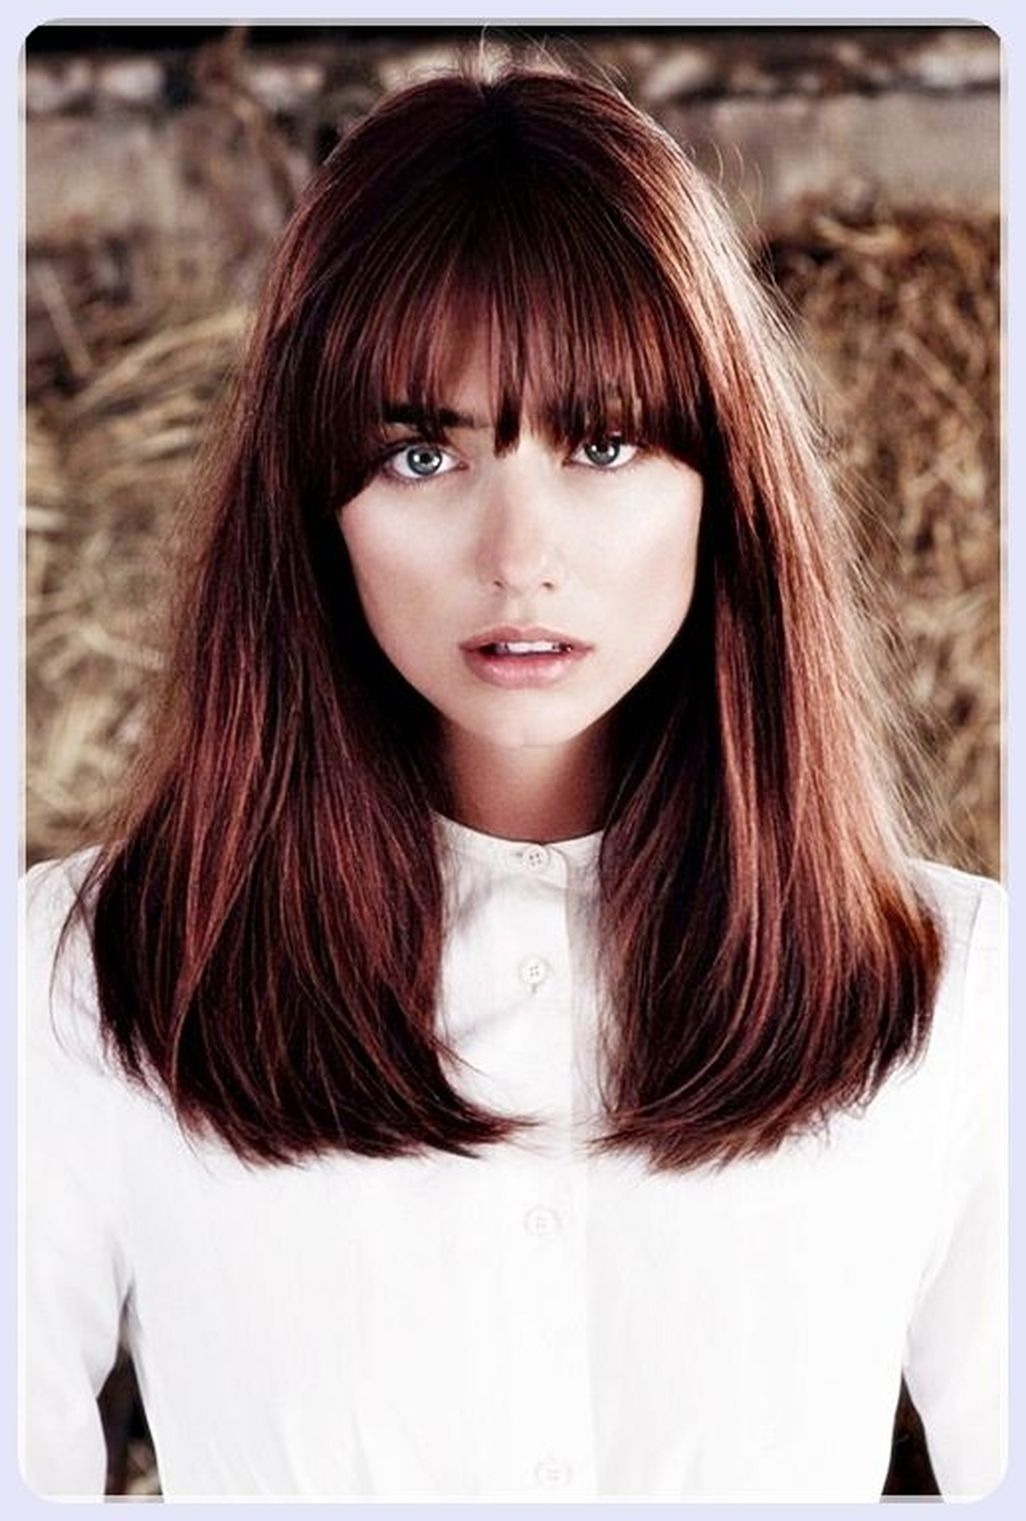 49 fashionable bangs hairstyles trends 2018 ideas | bang hairstyles